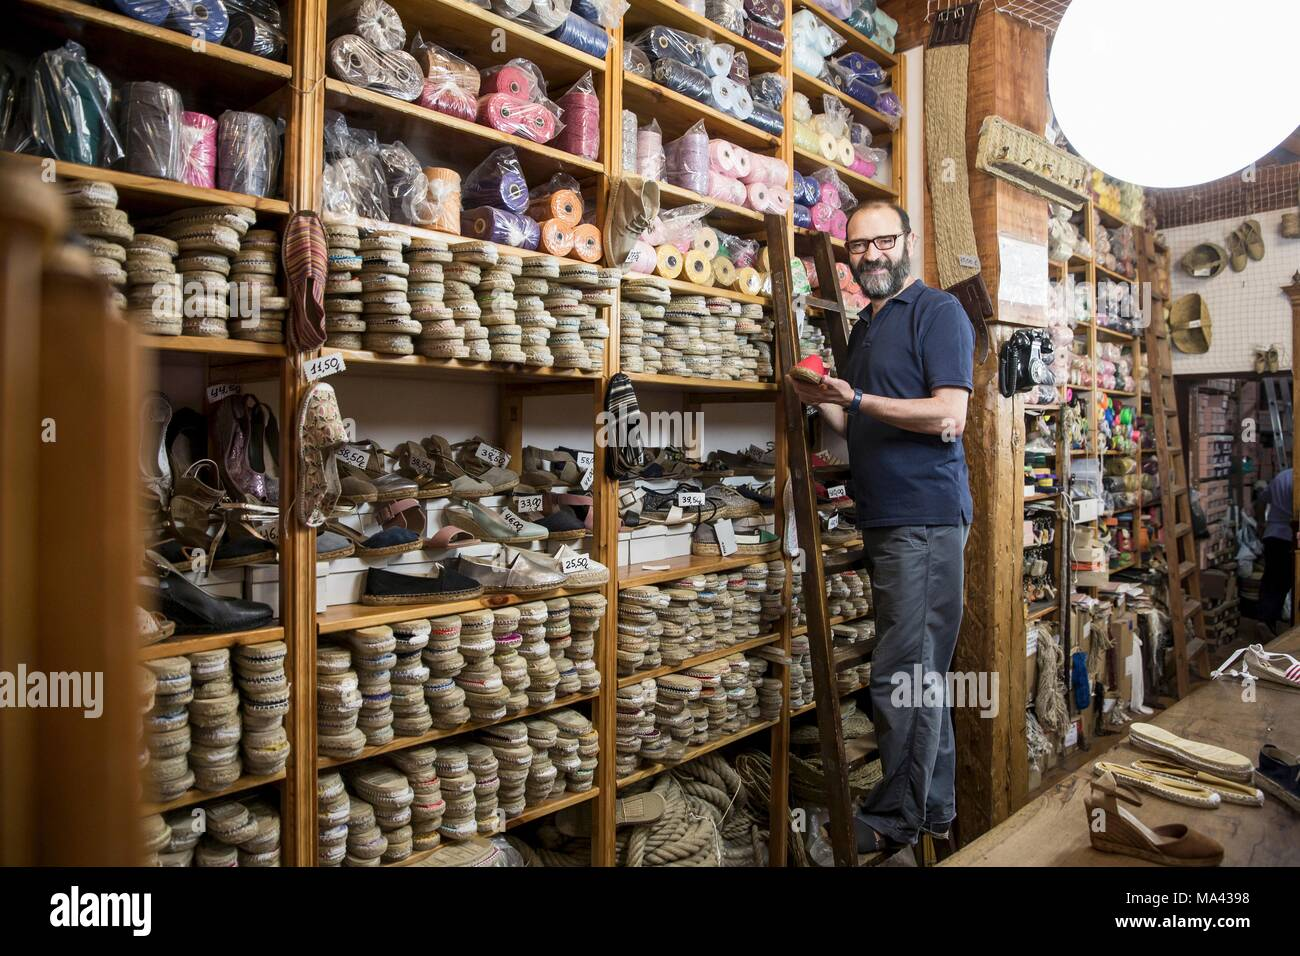 Jes s hernanz the owner of casa hernanz a shoe shop for - Casa hernanz madrid ...